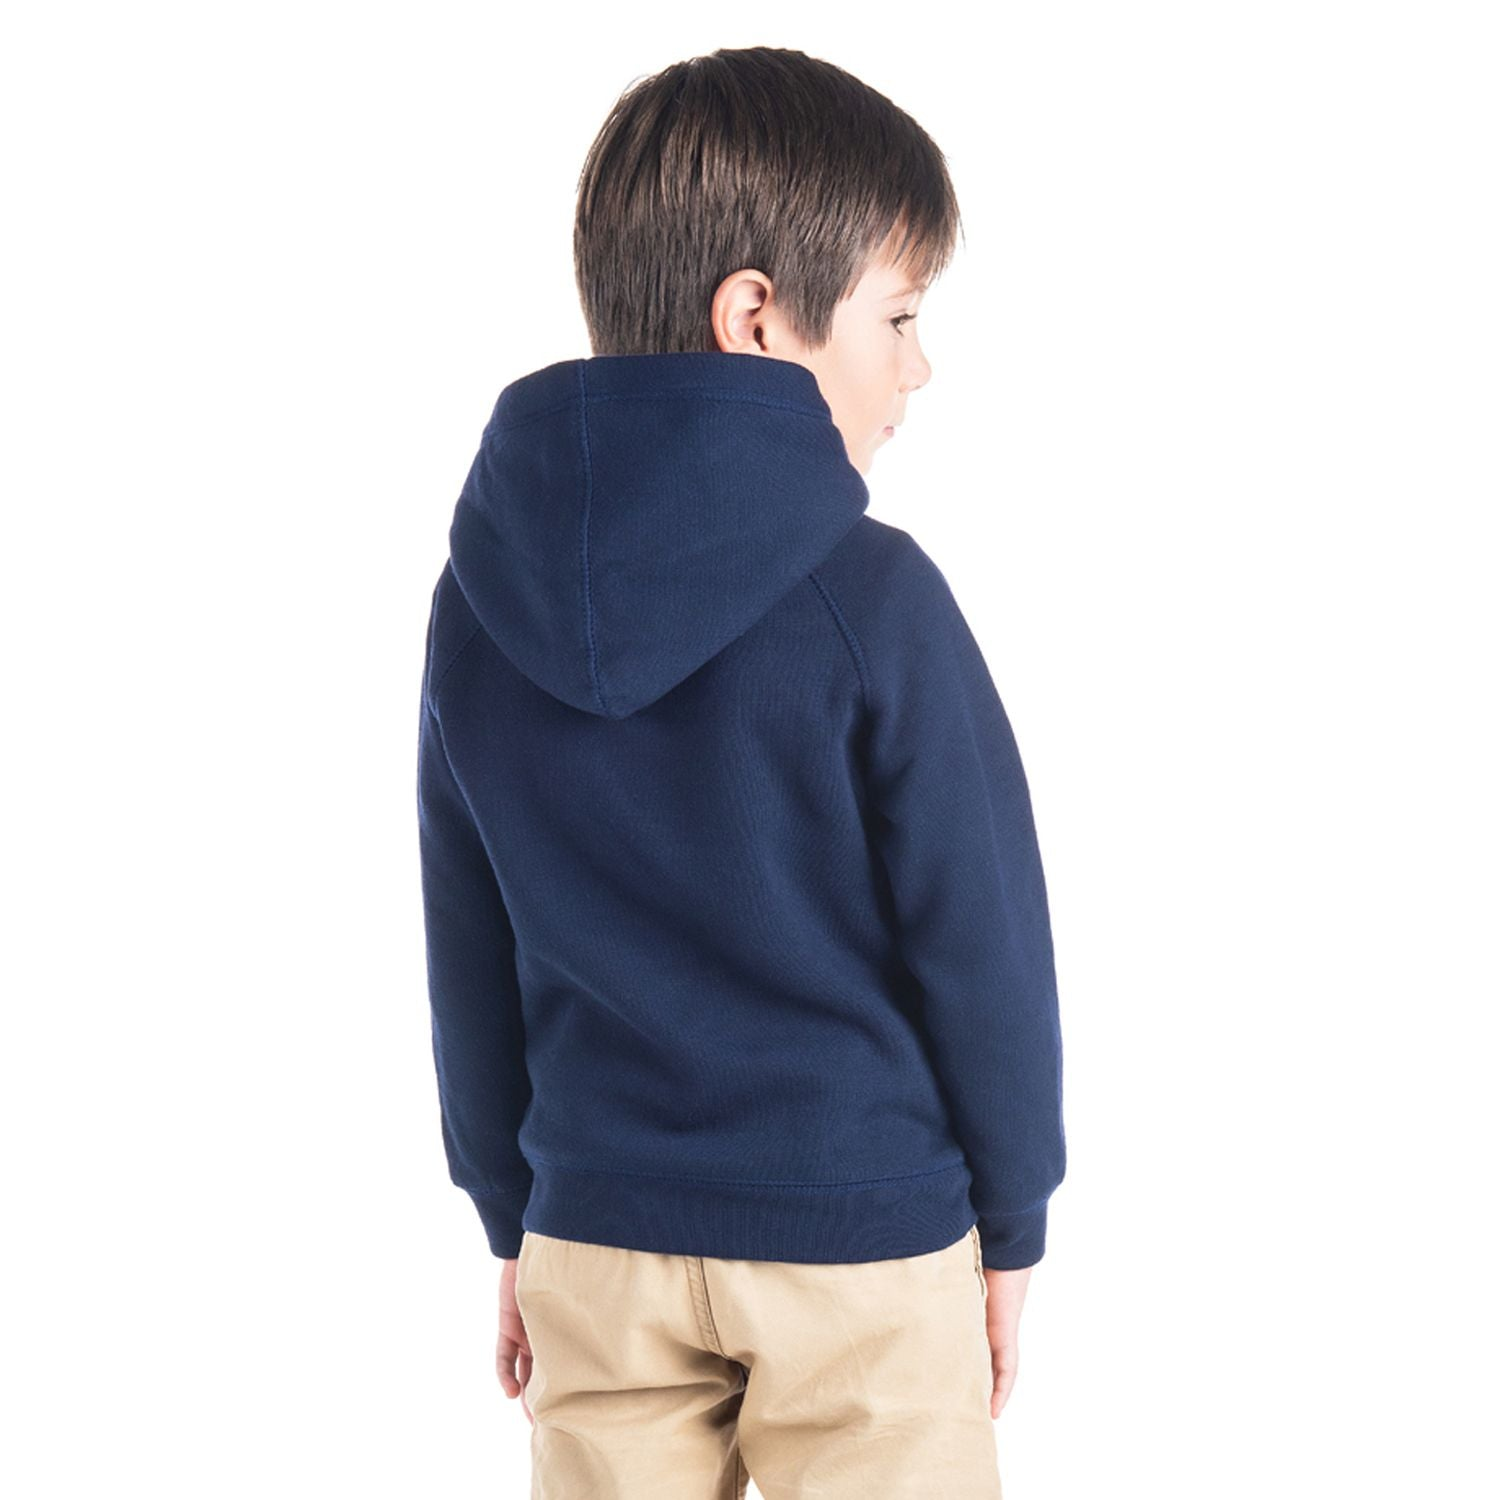 Moshi Sweatshirt for Boys